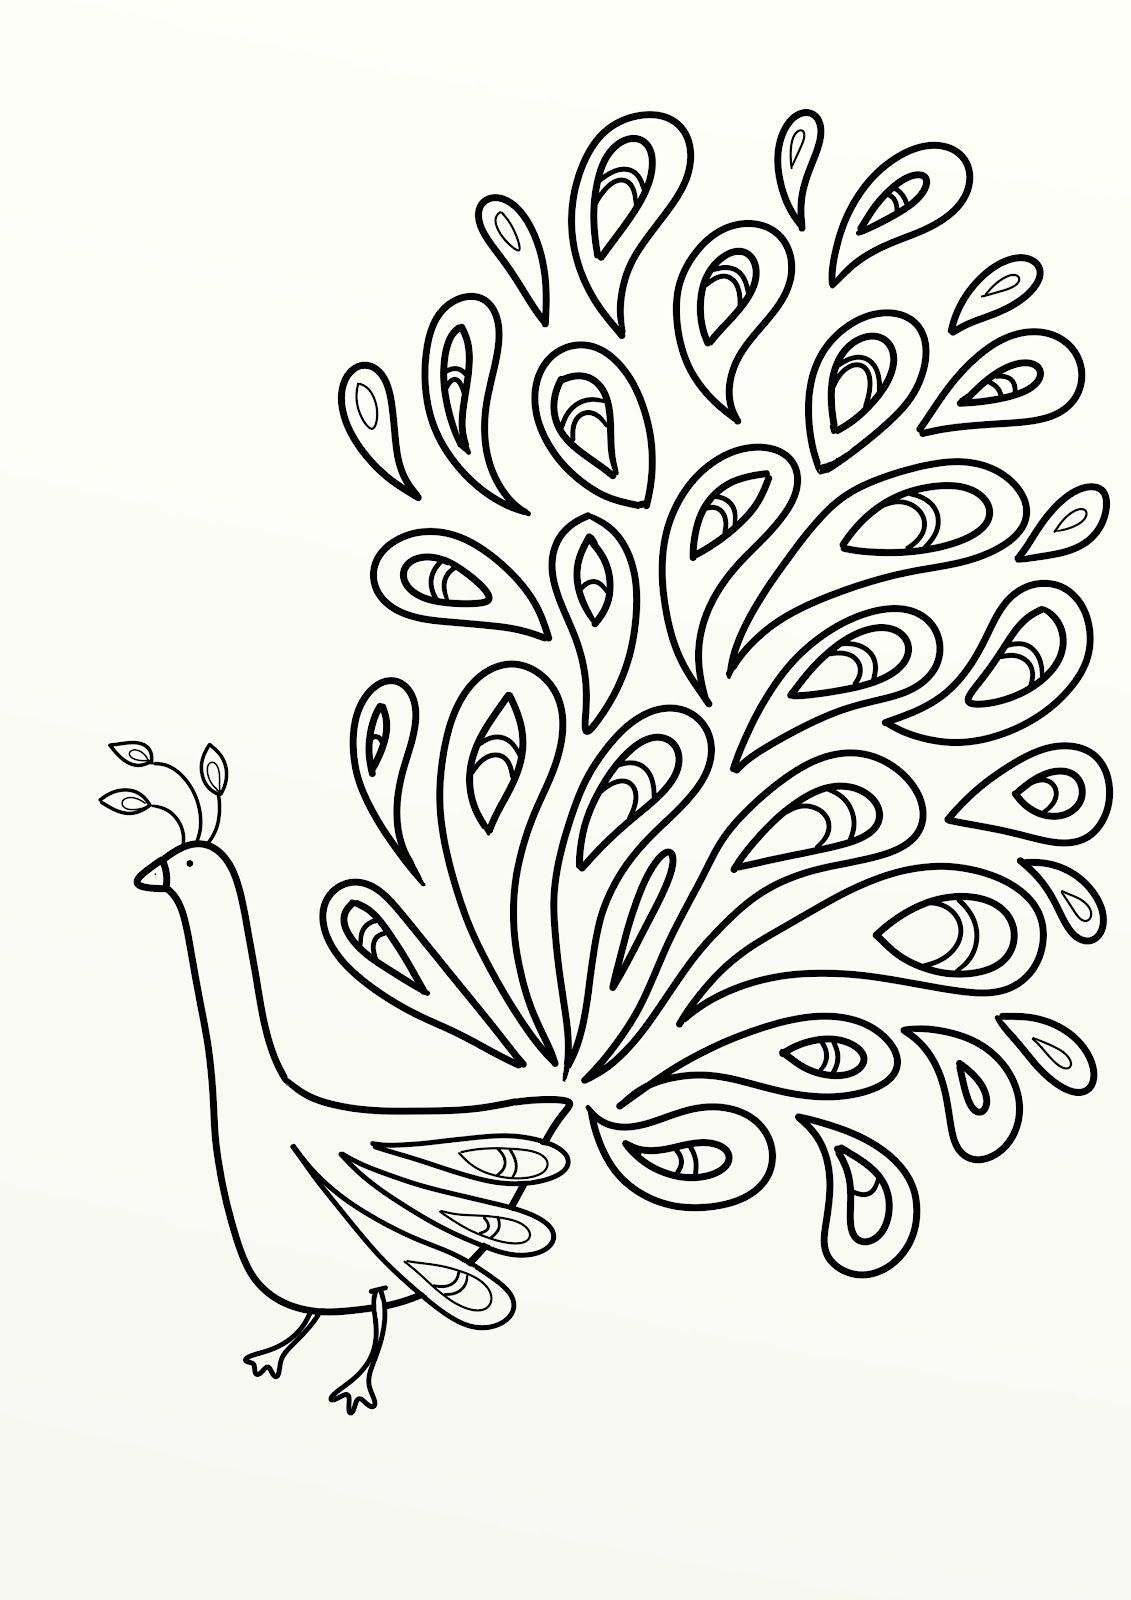 Colouring adults benefits - Print The Peacock Coloring Pages Item 11001 Peacock Coloring Pages Free Coloring Pages Of